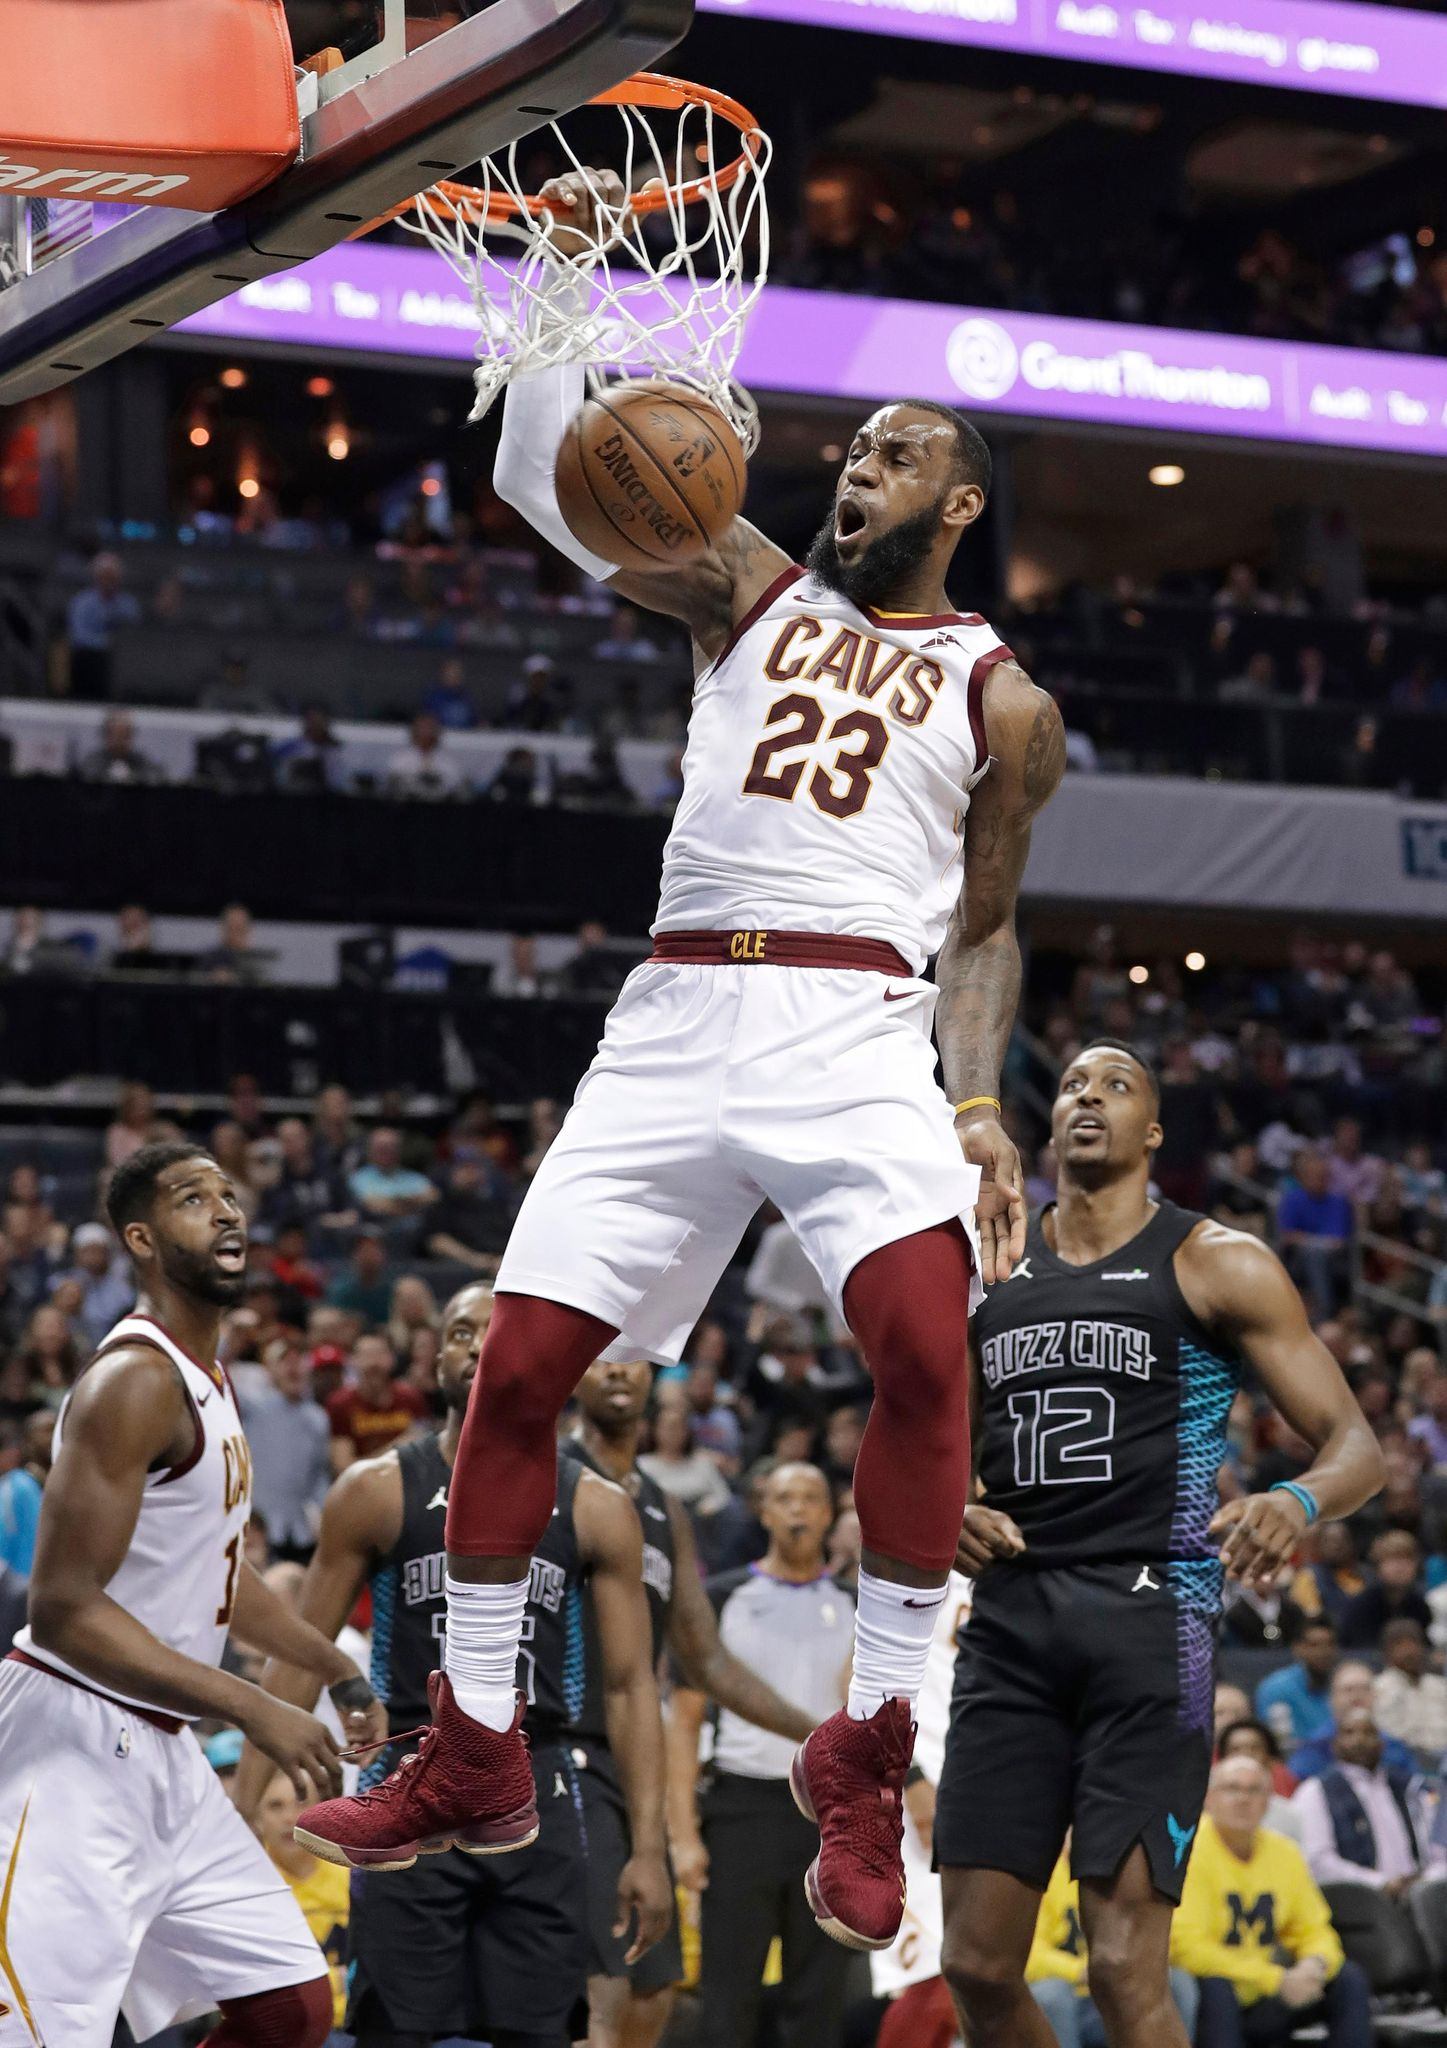 Prime time: LeBron defying age, better than ever at 33